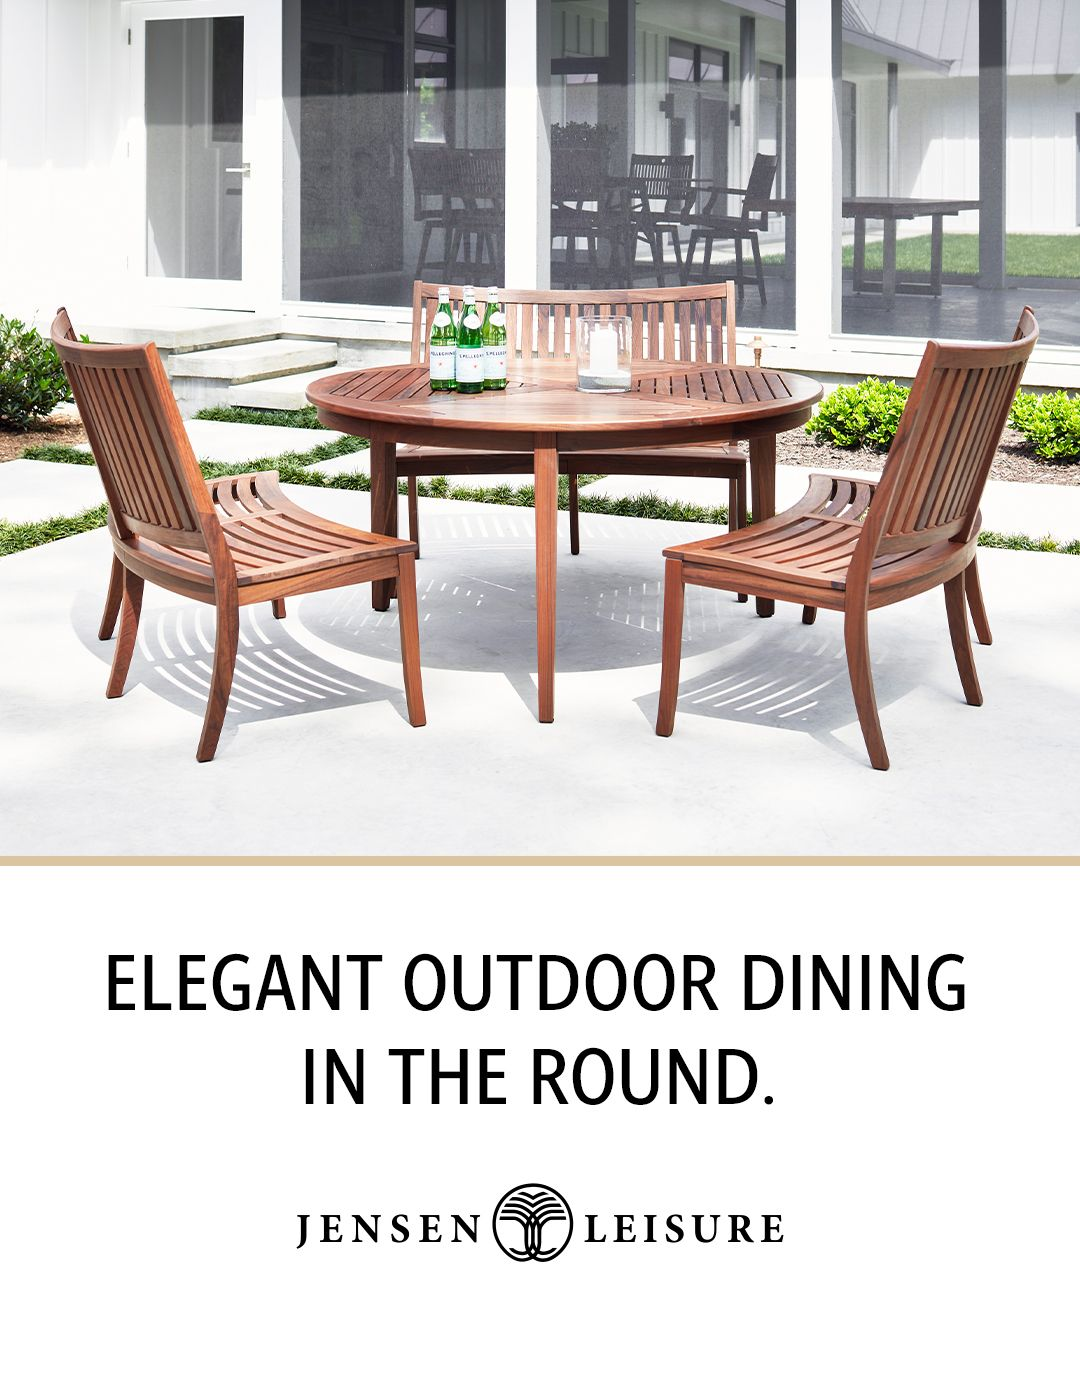 Round Outdoor Ipe Wood Dining For Six From Jensen Leisure Round Dining Table Dining Table Outdoor Dining